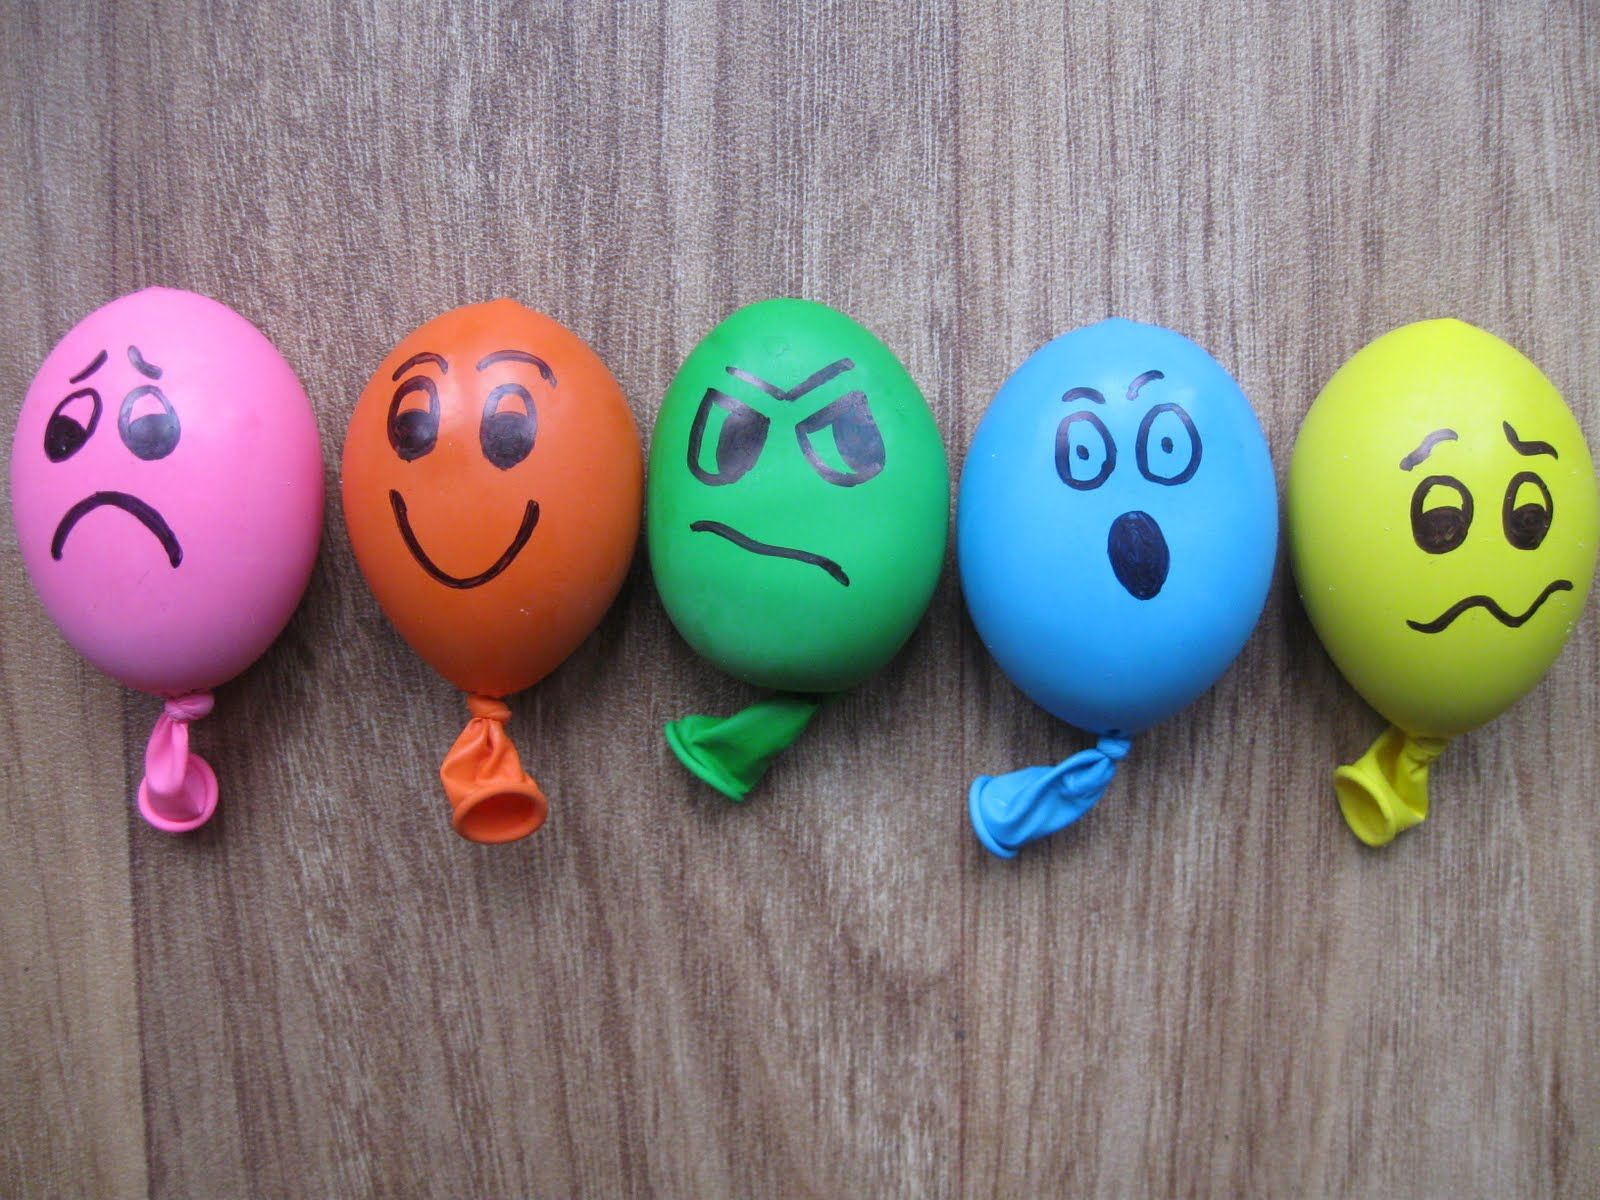 Funny balloon faces - Stress Ball Balloons Or For Pre School Play Make These Playdough Filled Balloons